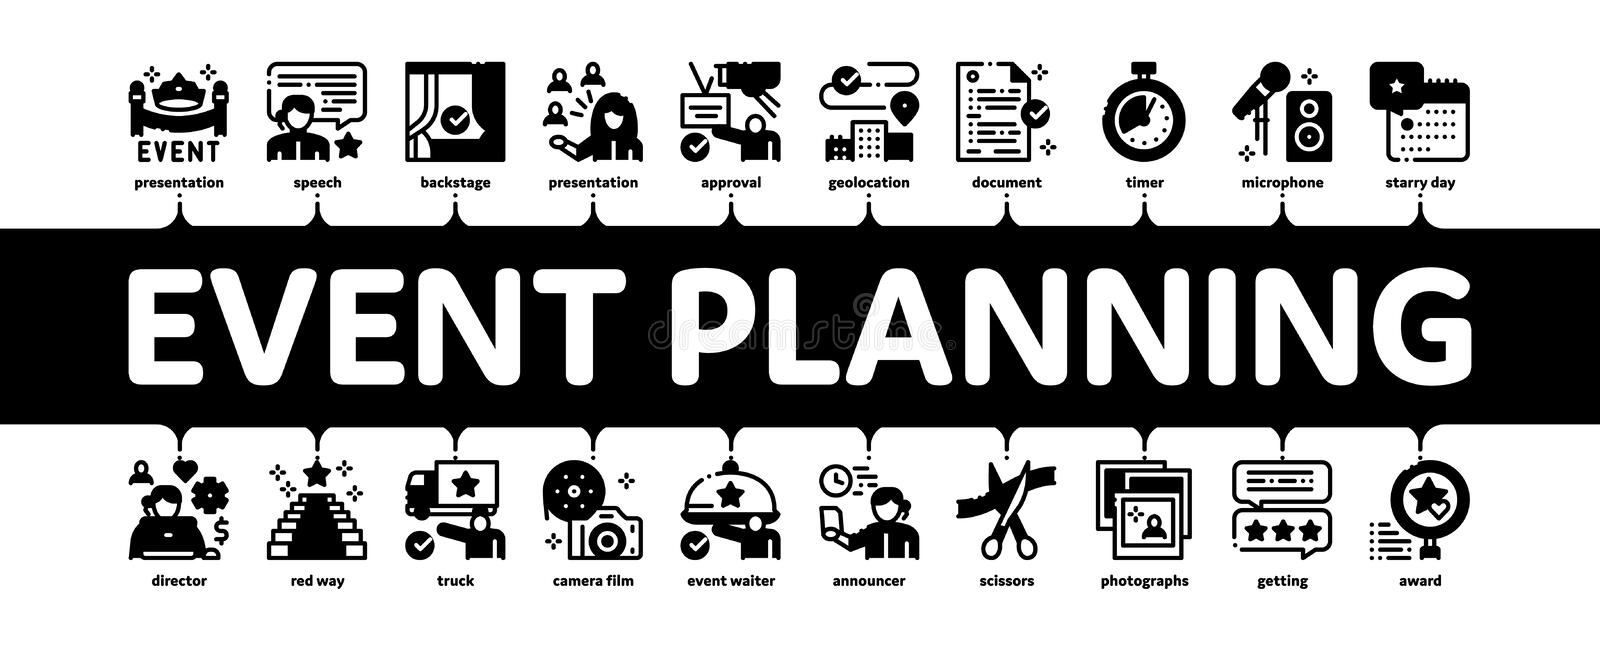 Calendar Or Schedule Icon Symbol Of Planning Events And ... |Event Planner Symbol